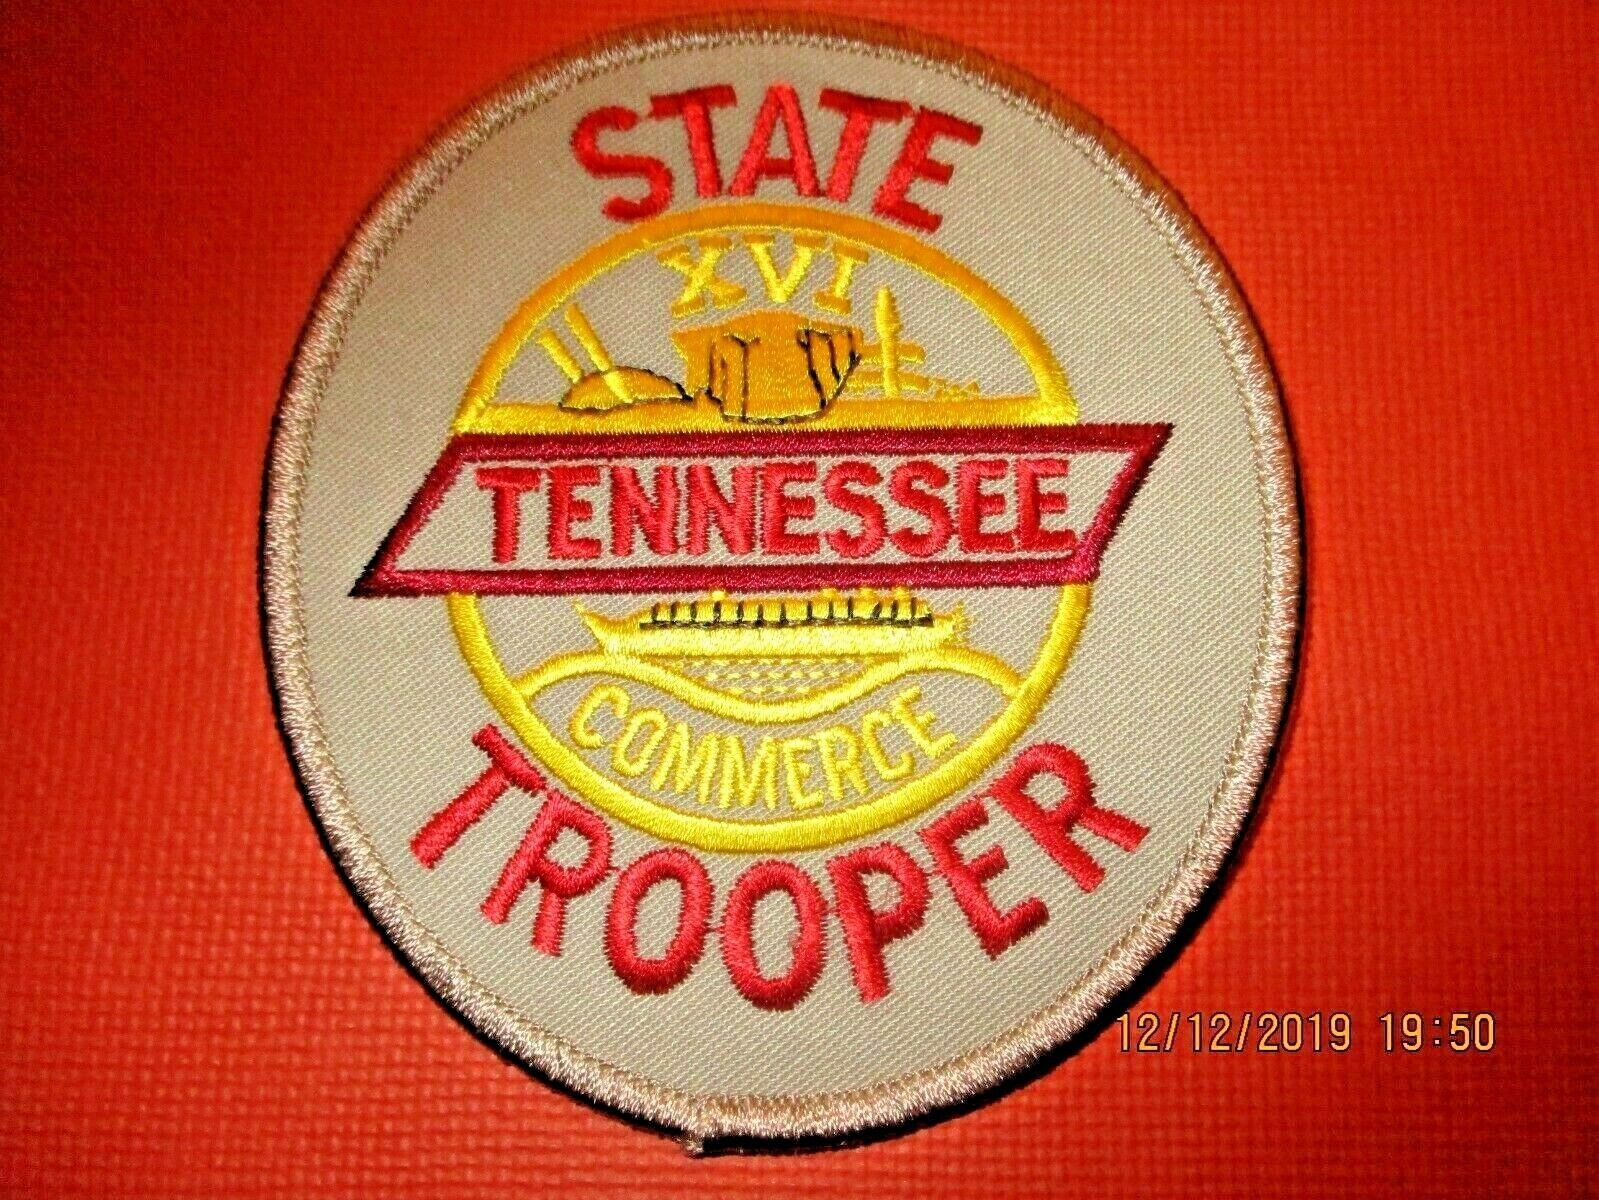 Tennessee State Trooper Police Patch,New